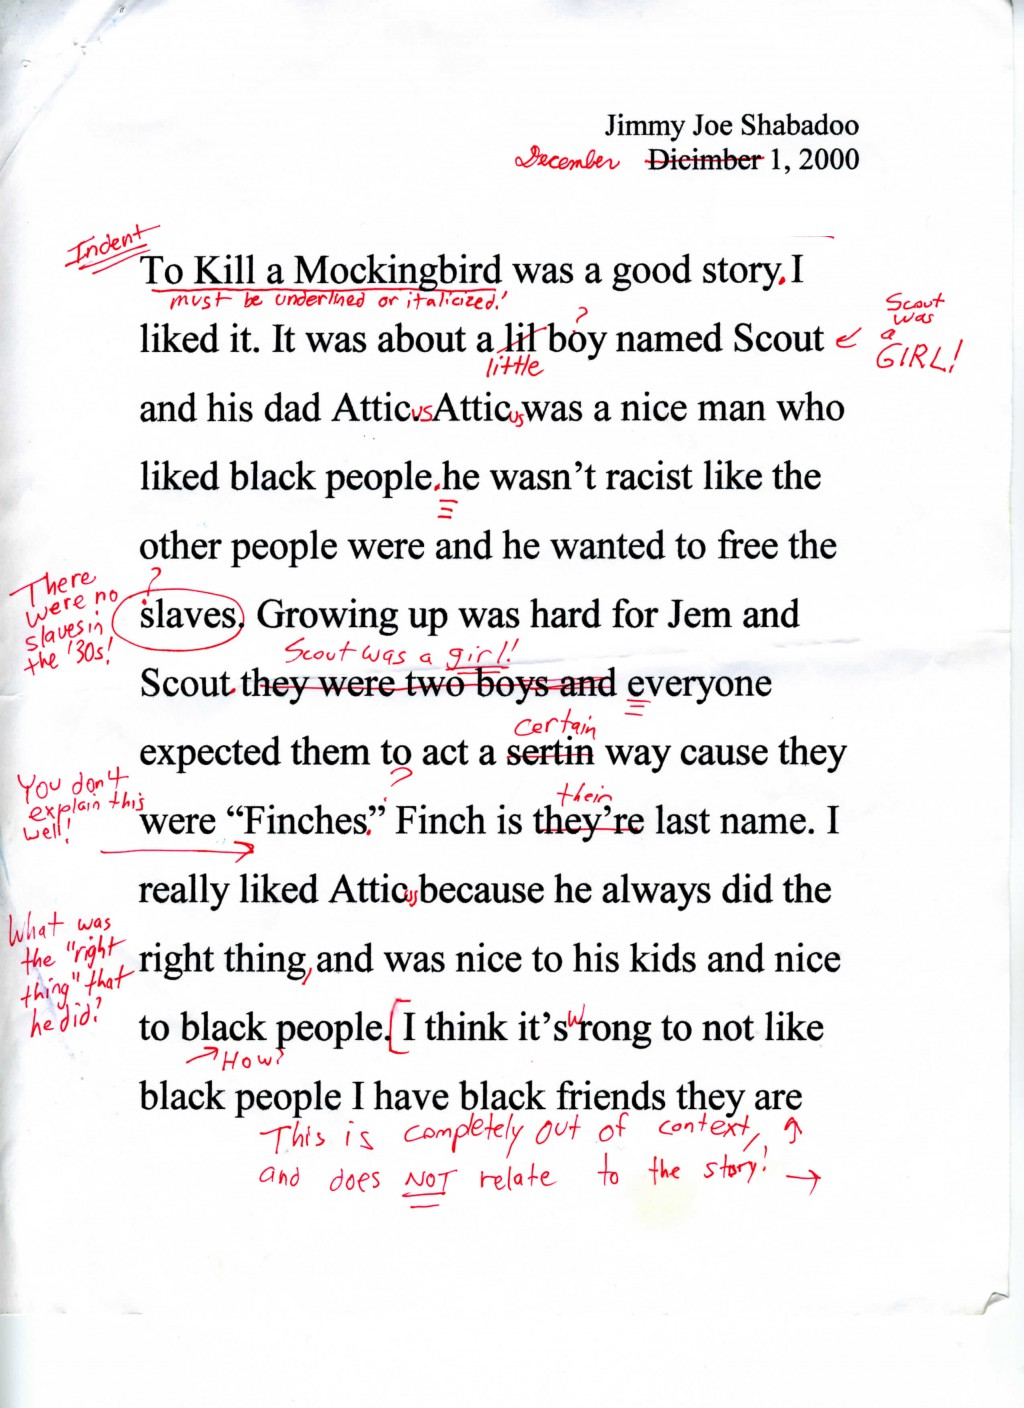 023 To Kill Mockingbird Parody Paper Essay Example Satire Fearsome Essays About High School Examples On Gun Control Large